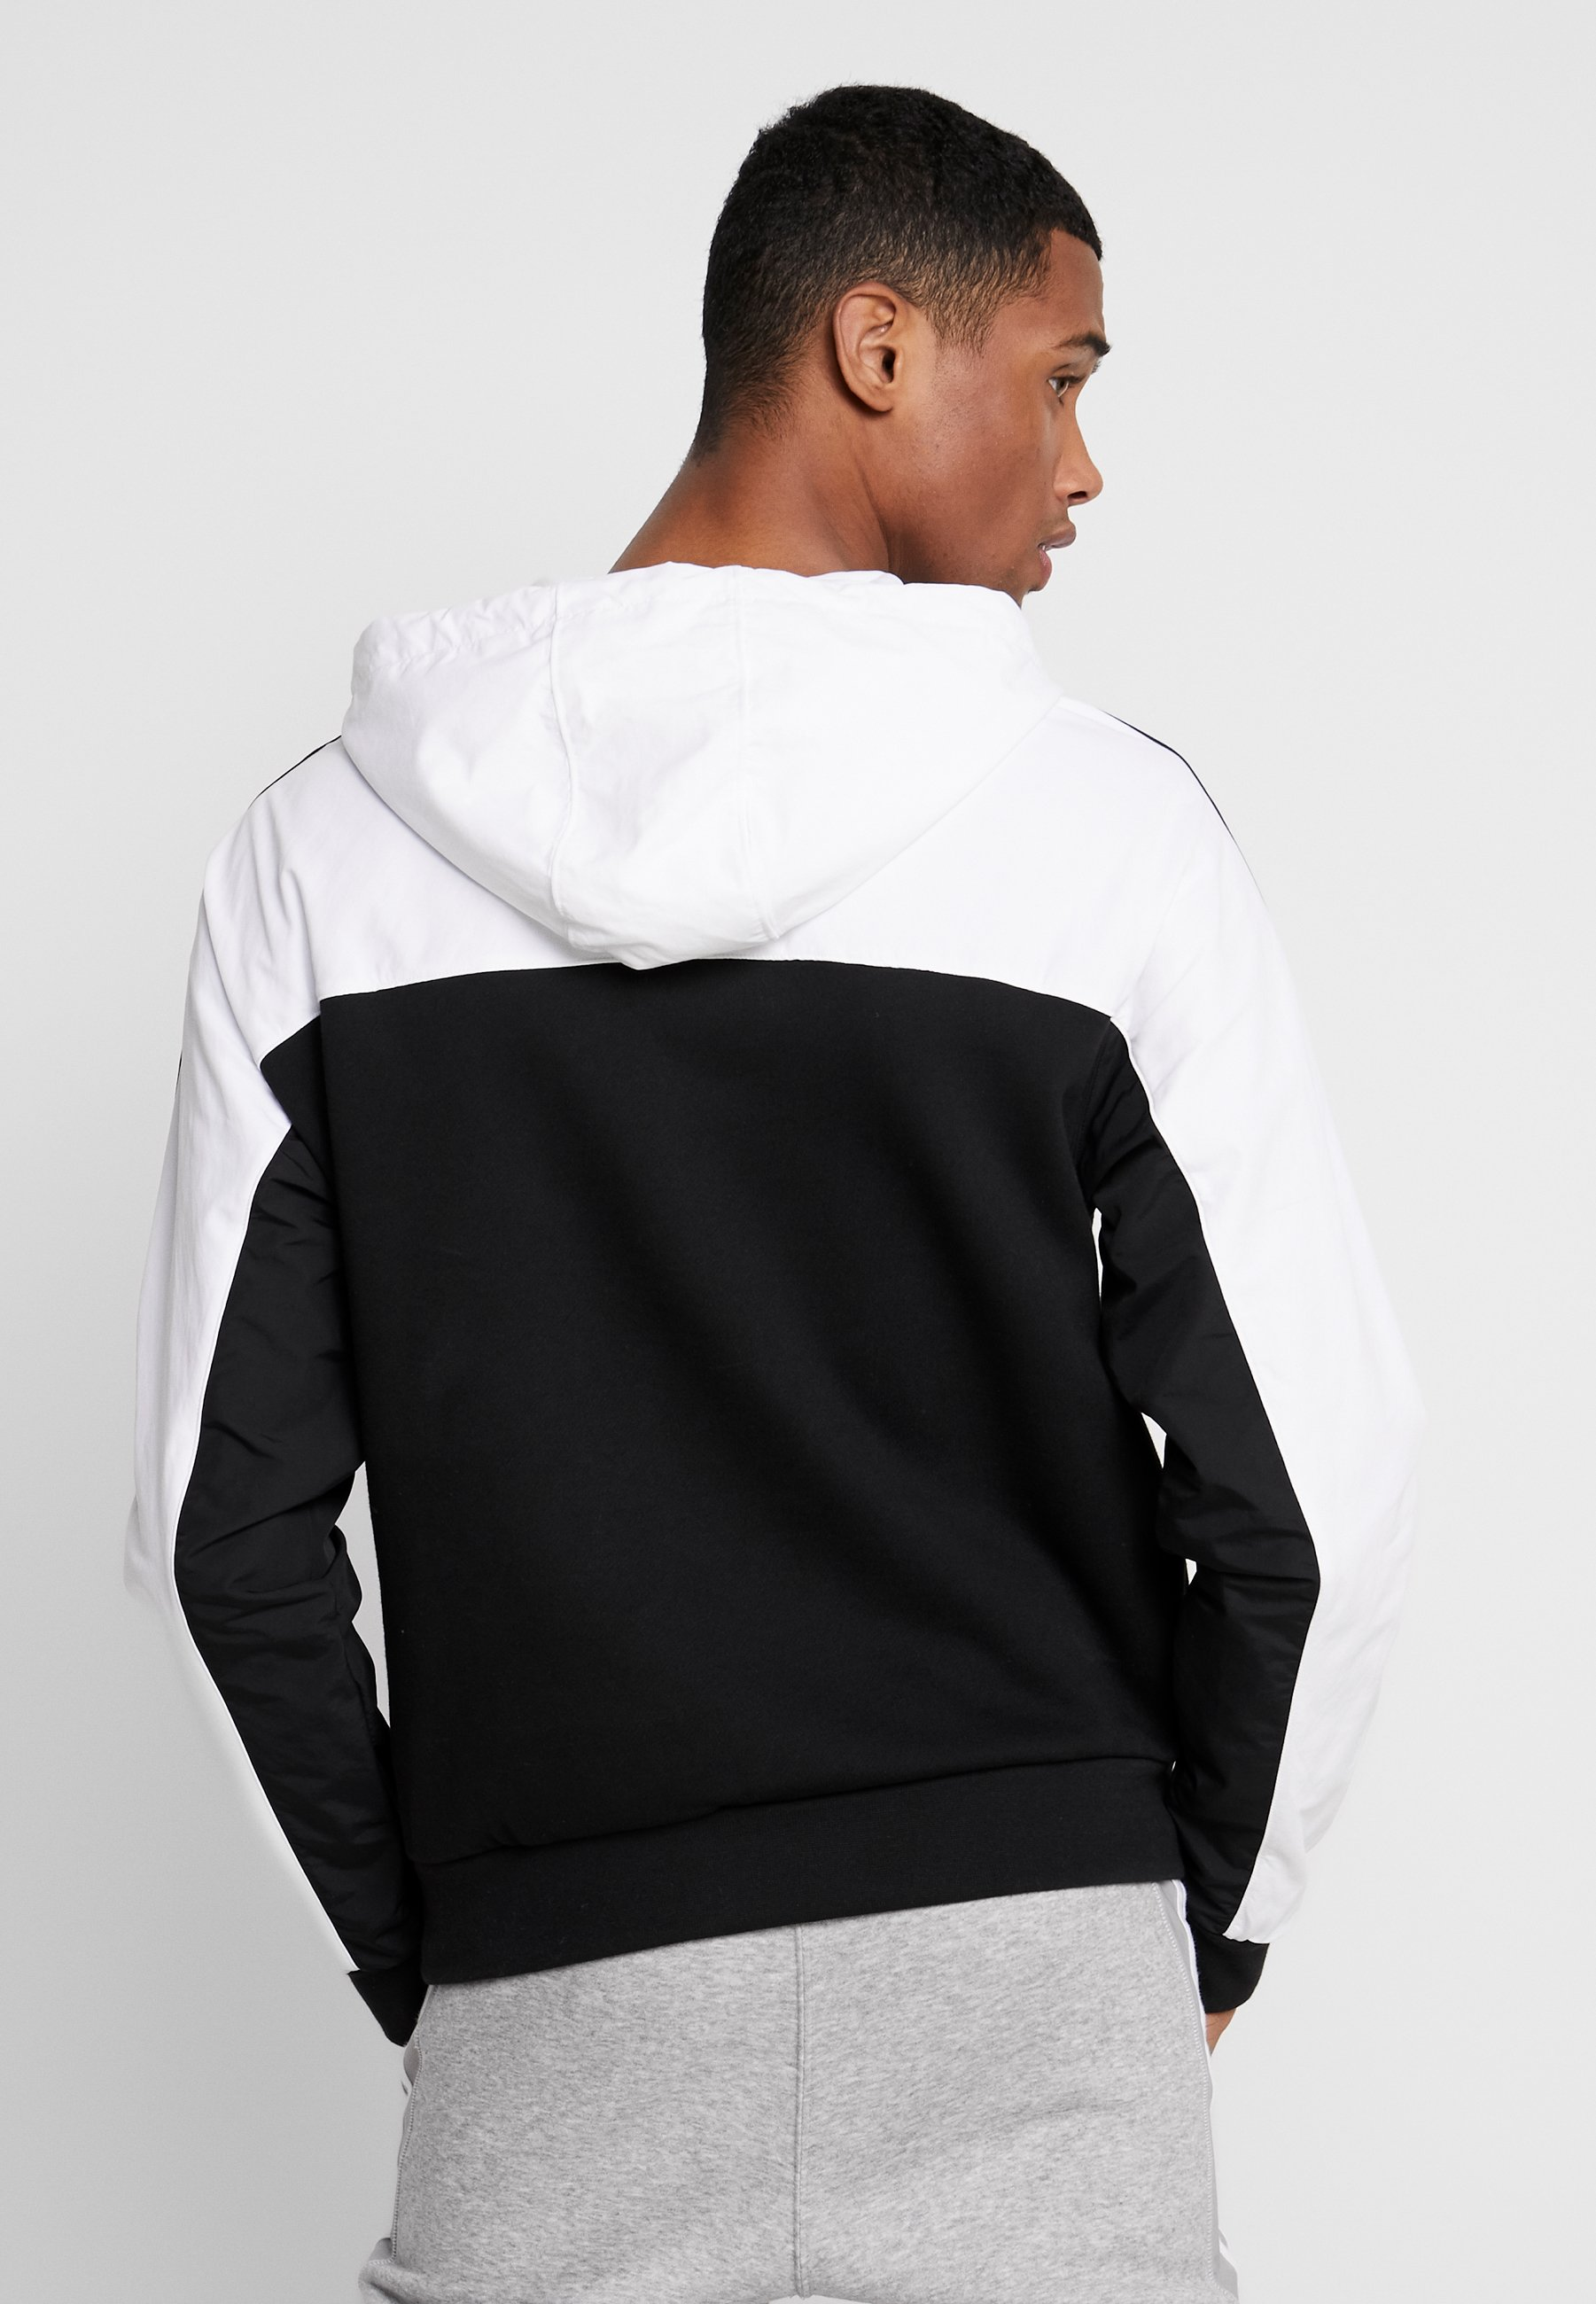 Capuche Originals white Mixed HoodySweat À Adidas Black hrQCdxtsBo